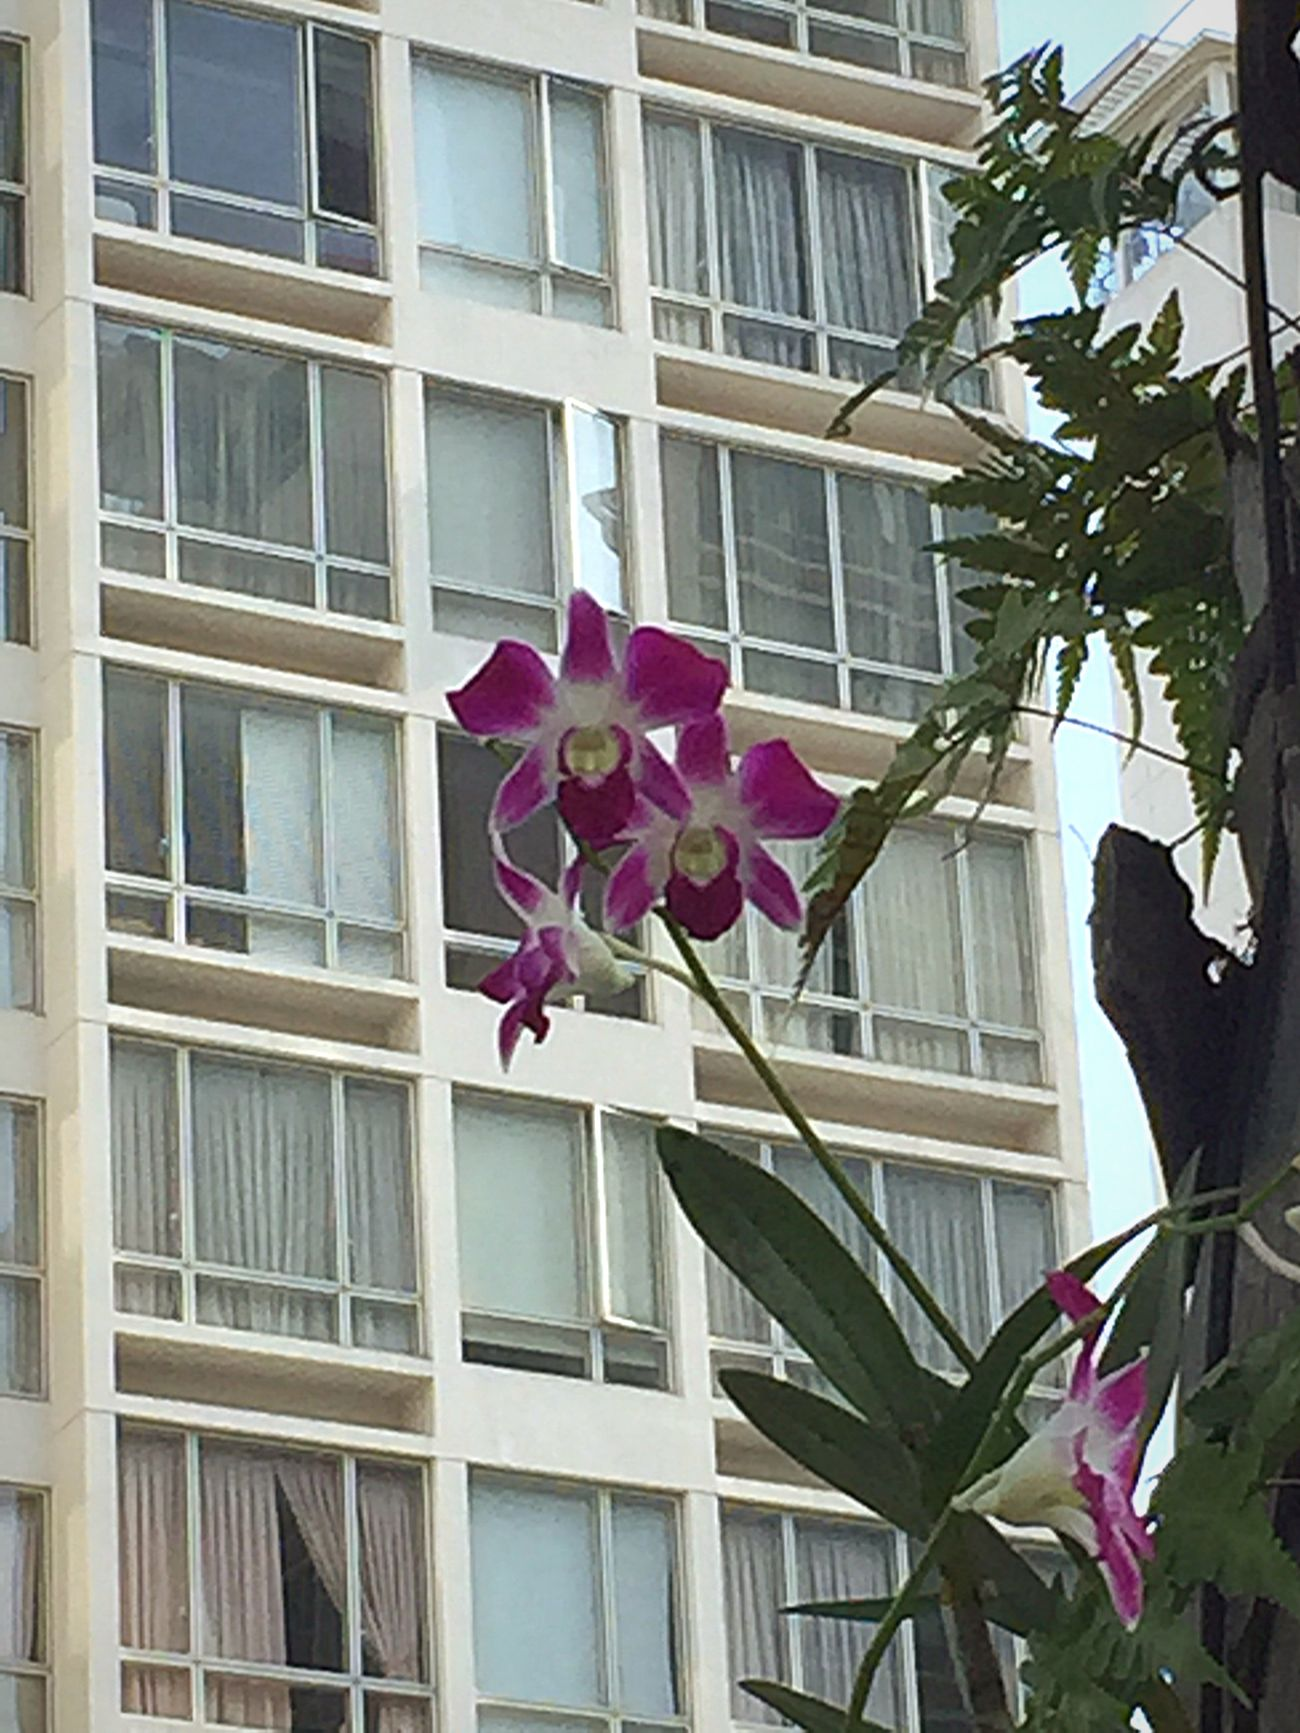 Flowers Orchid Beautiful Day Trees Building Apartments Feeling Thankful From My Point Of View